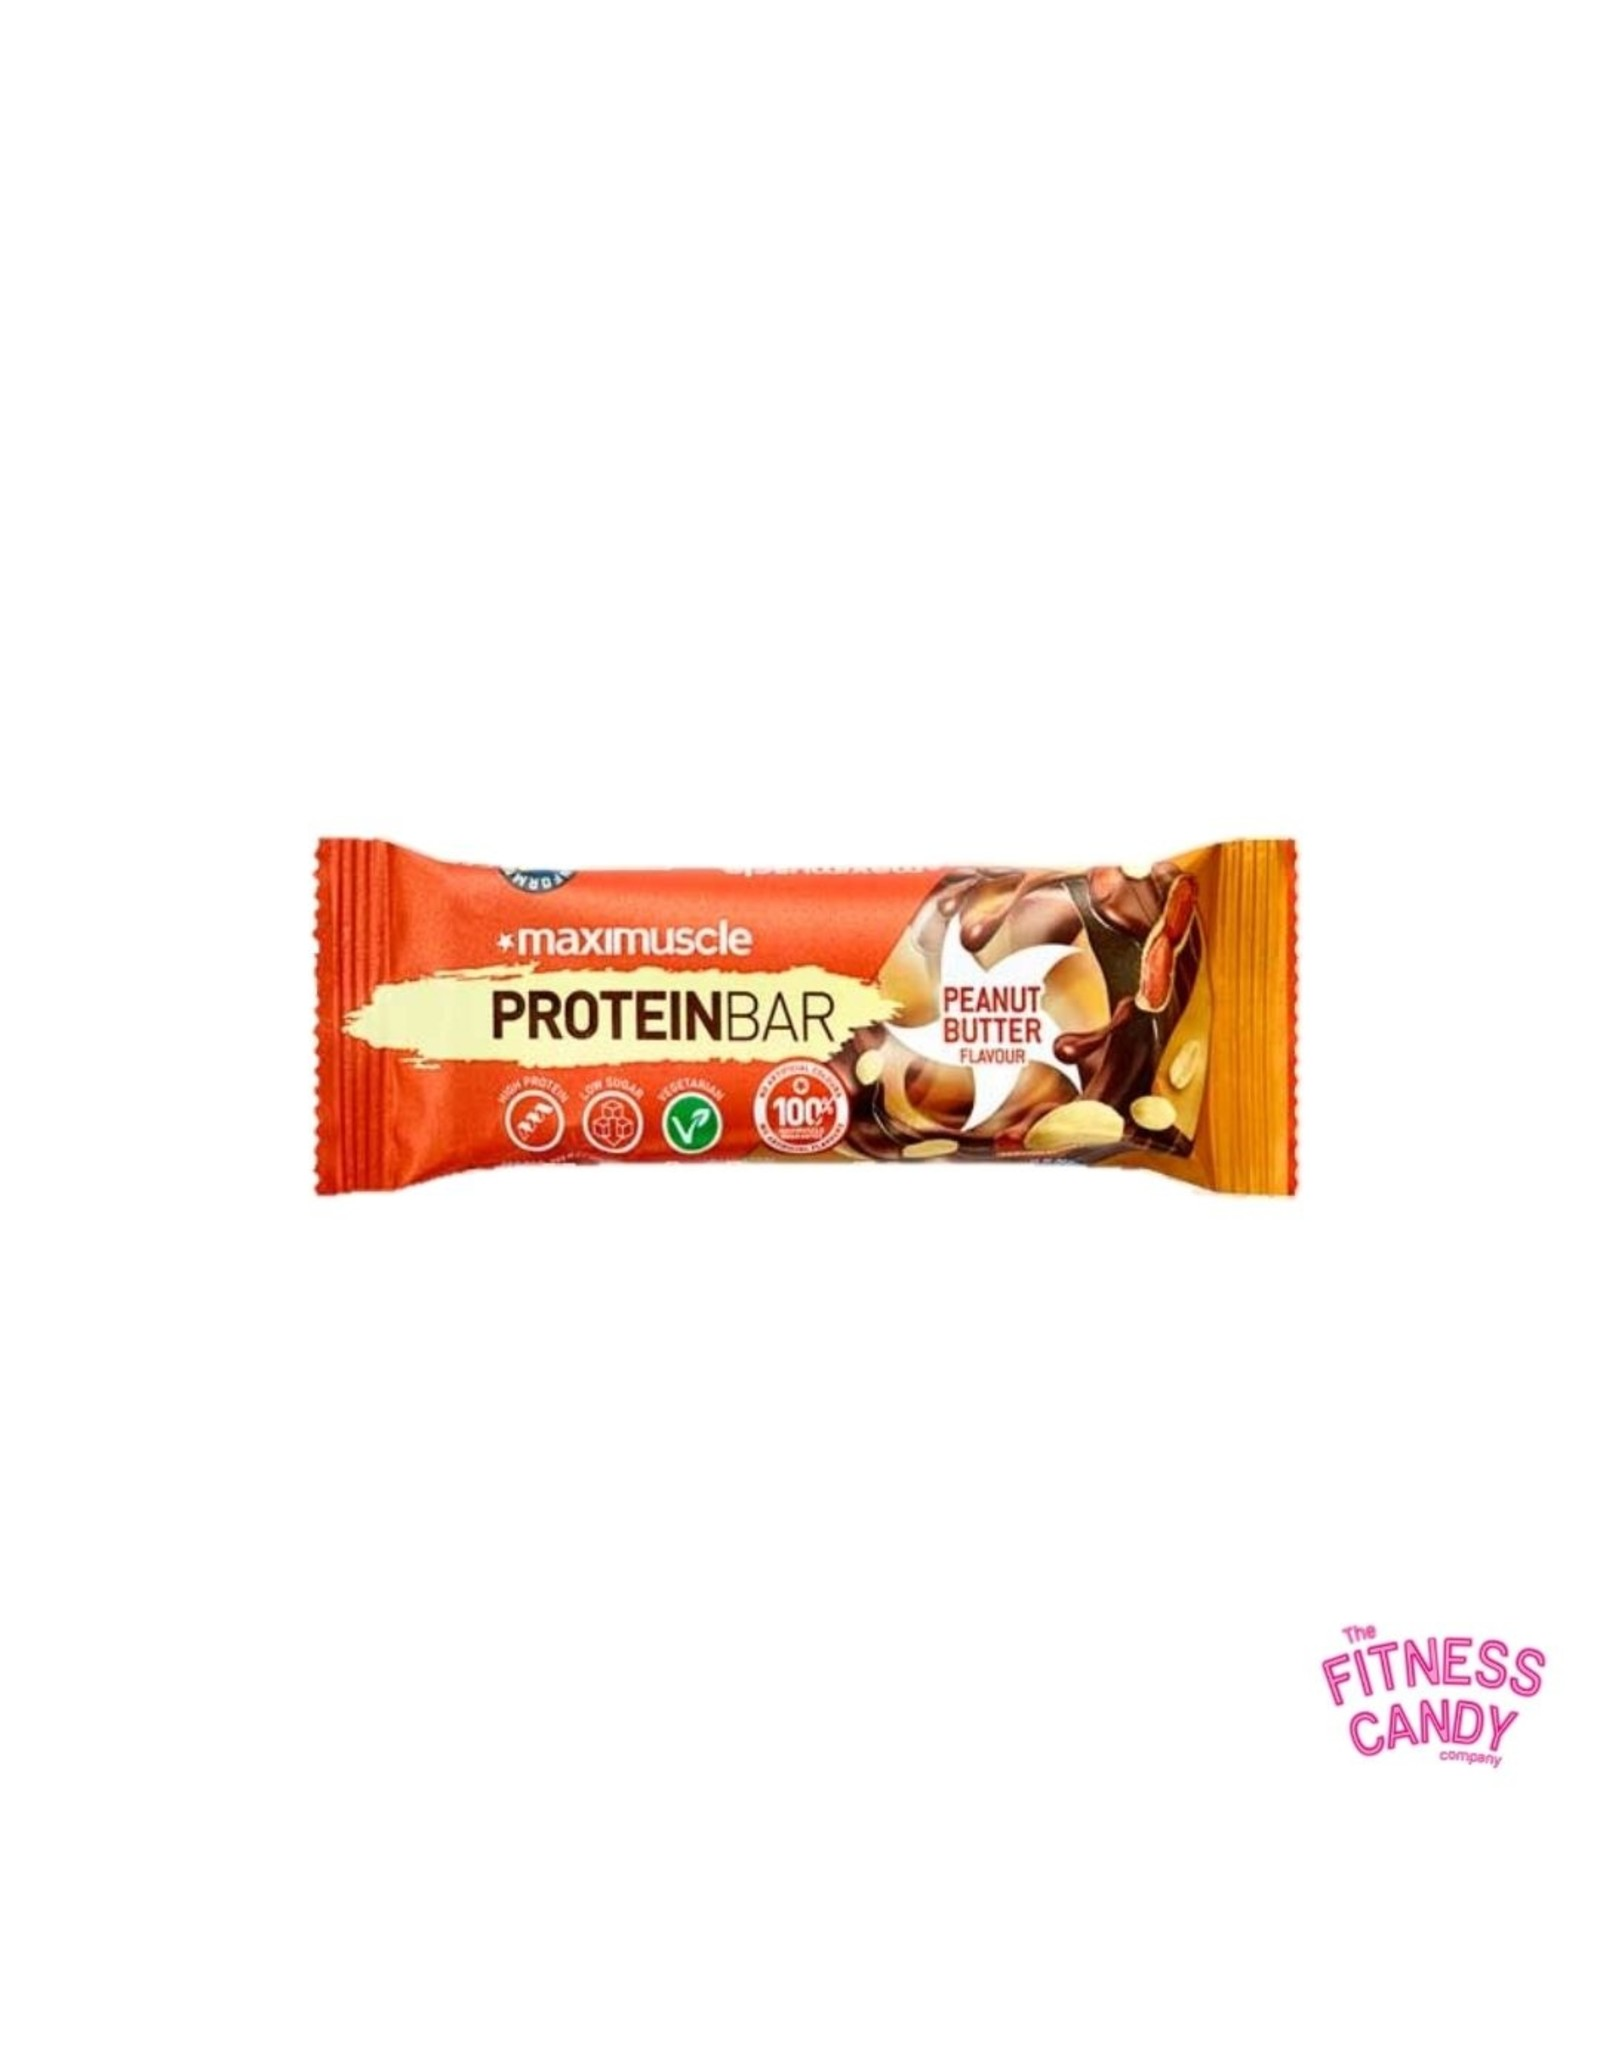 Maximuscle MAXIMUSCLE Peanut Butter Protein Bar